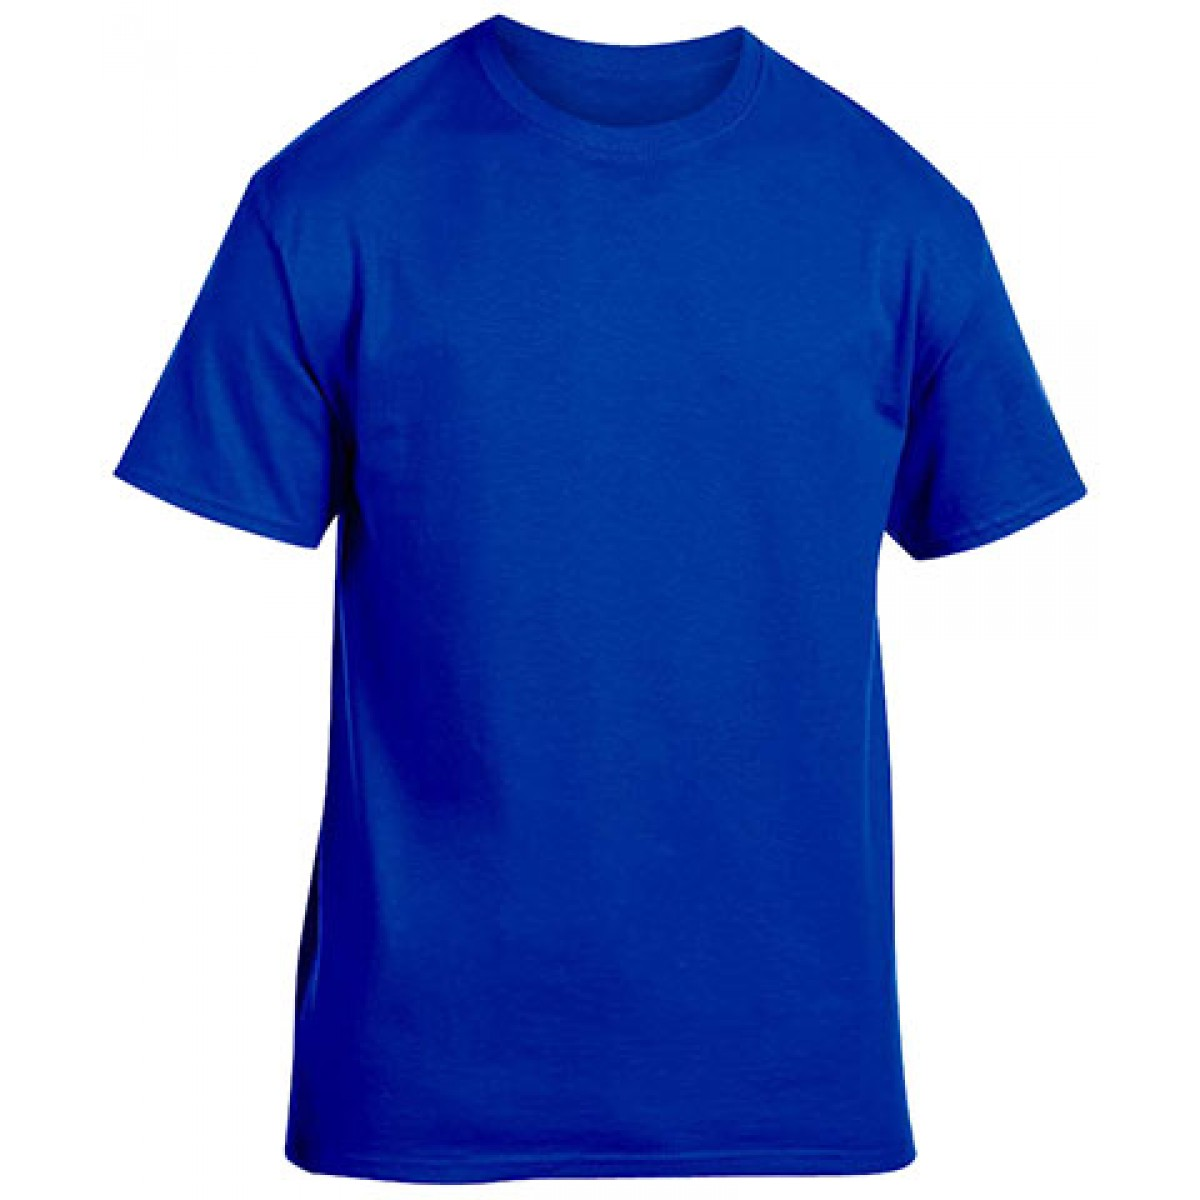 Cotton Short Sleeve T-Shirt-Royal Blue-3XL